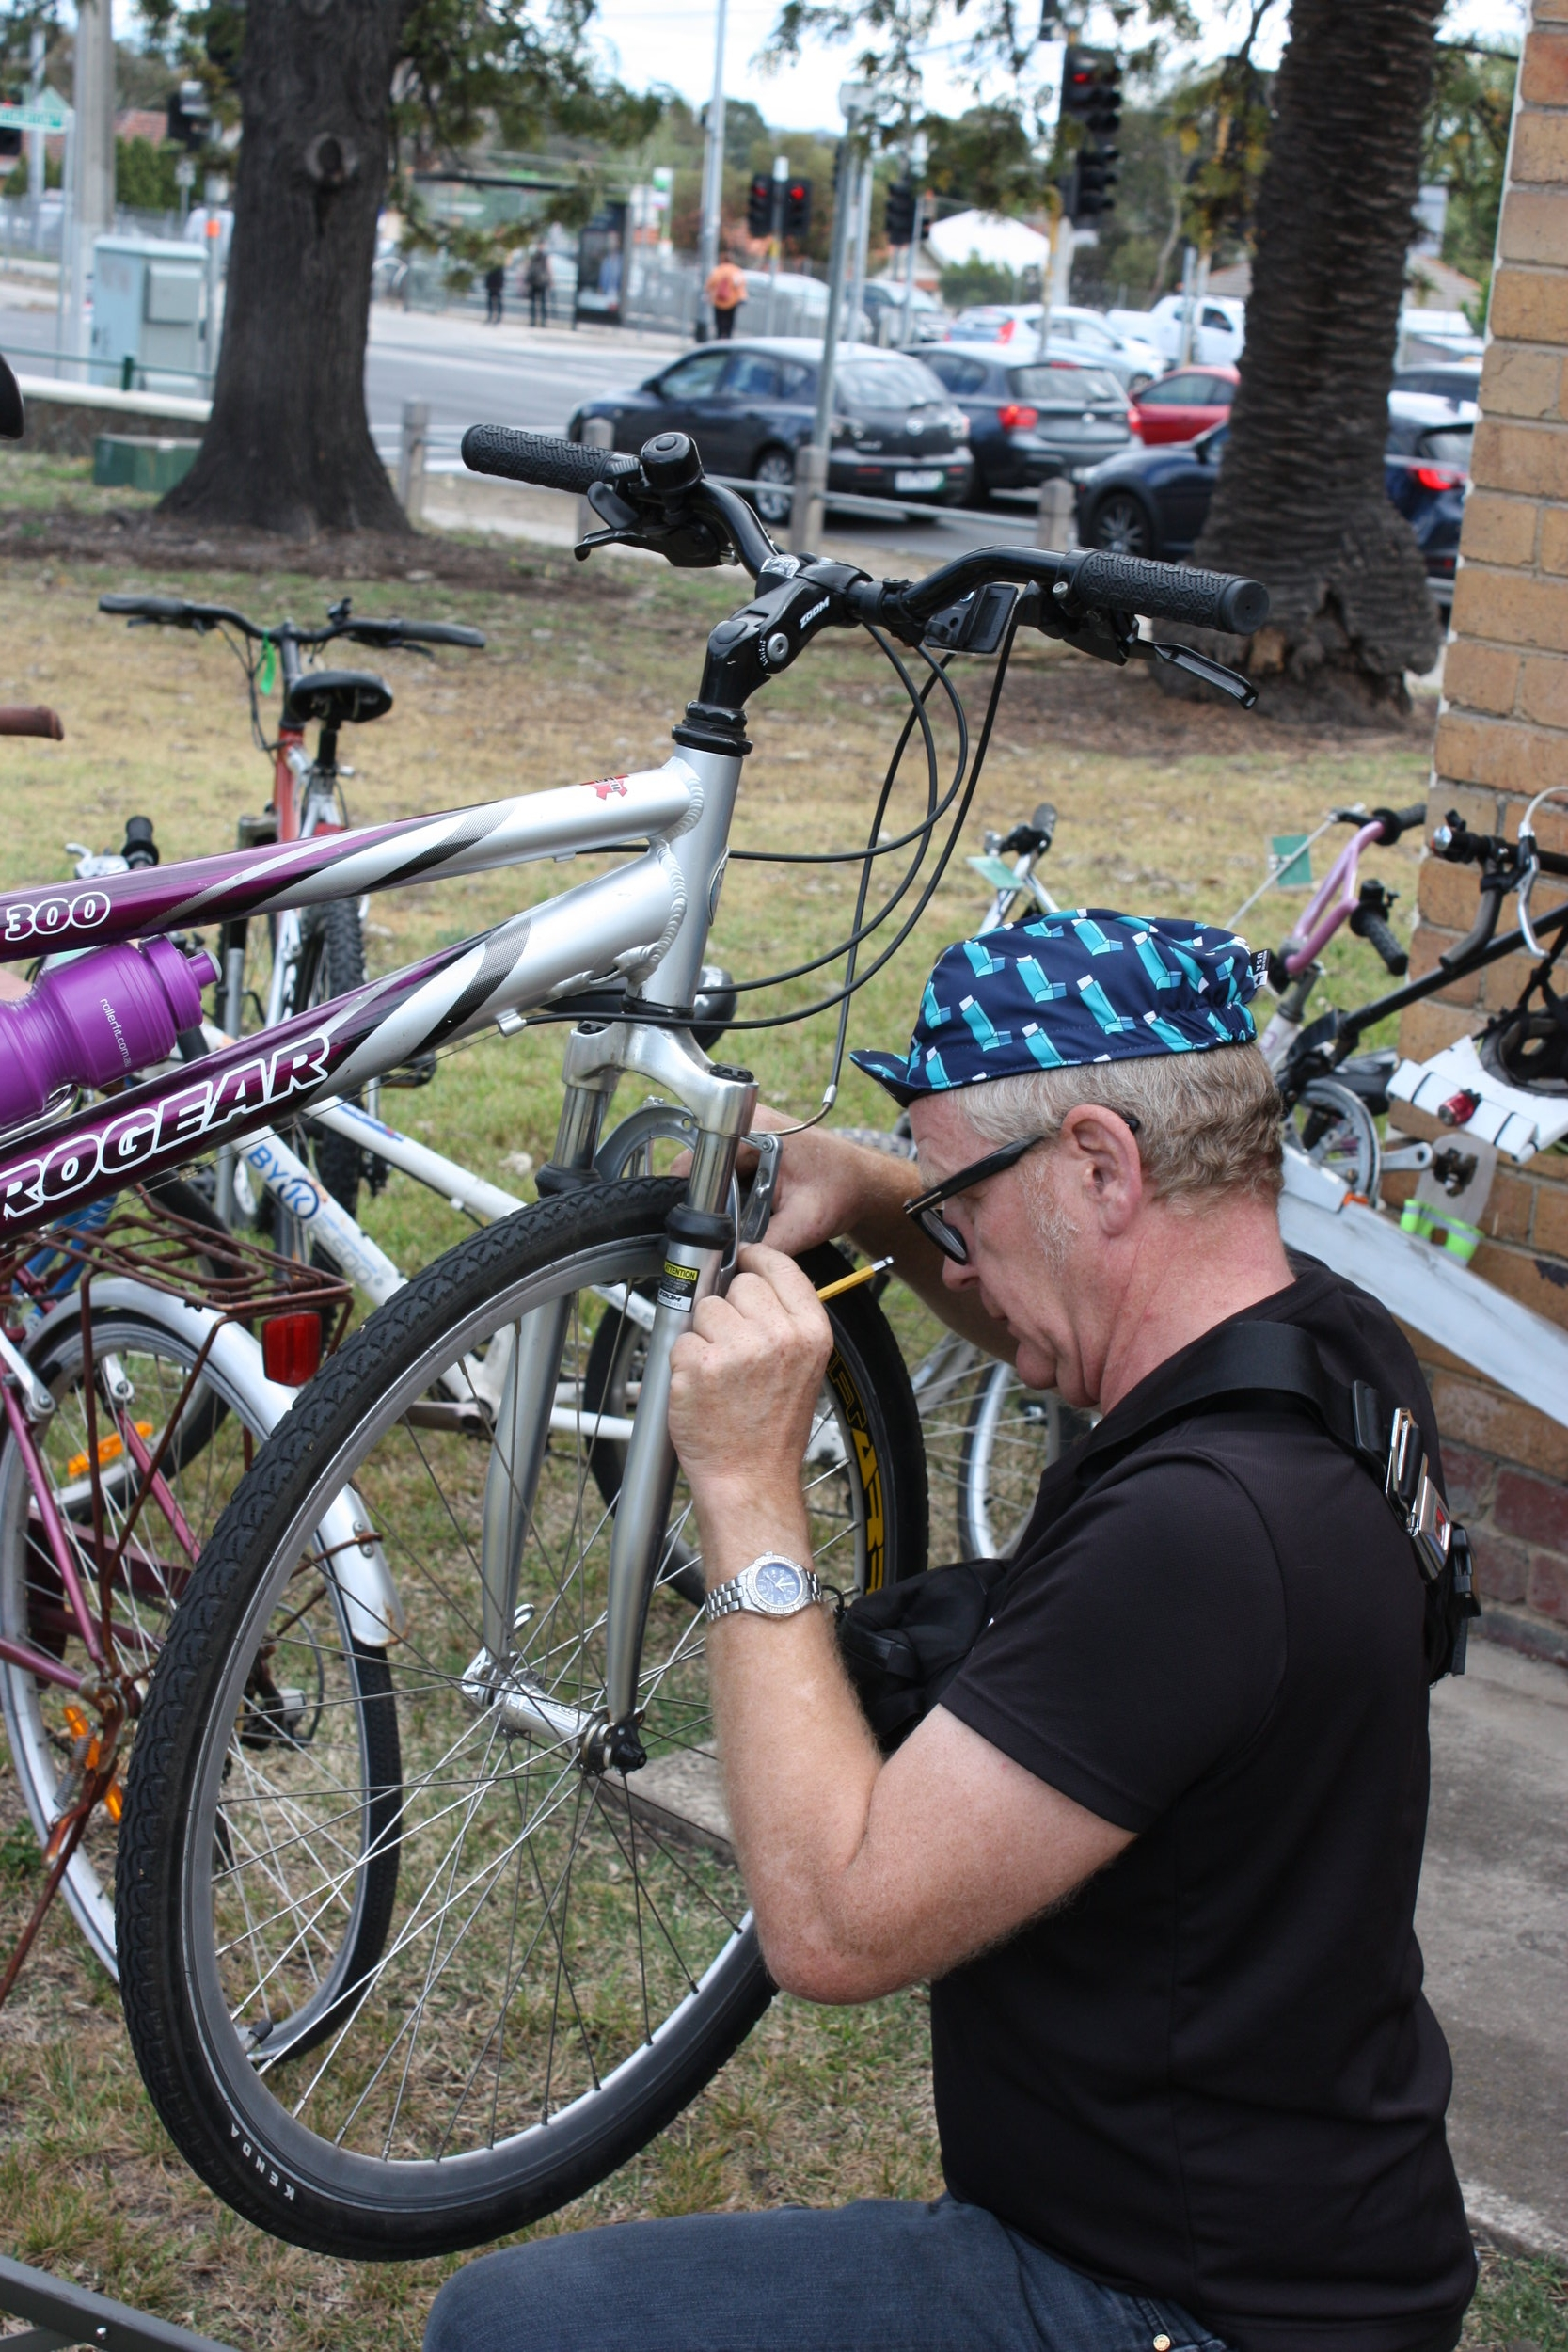 - Richie adjusting the brakes on a commuter's bike